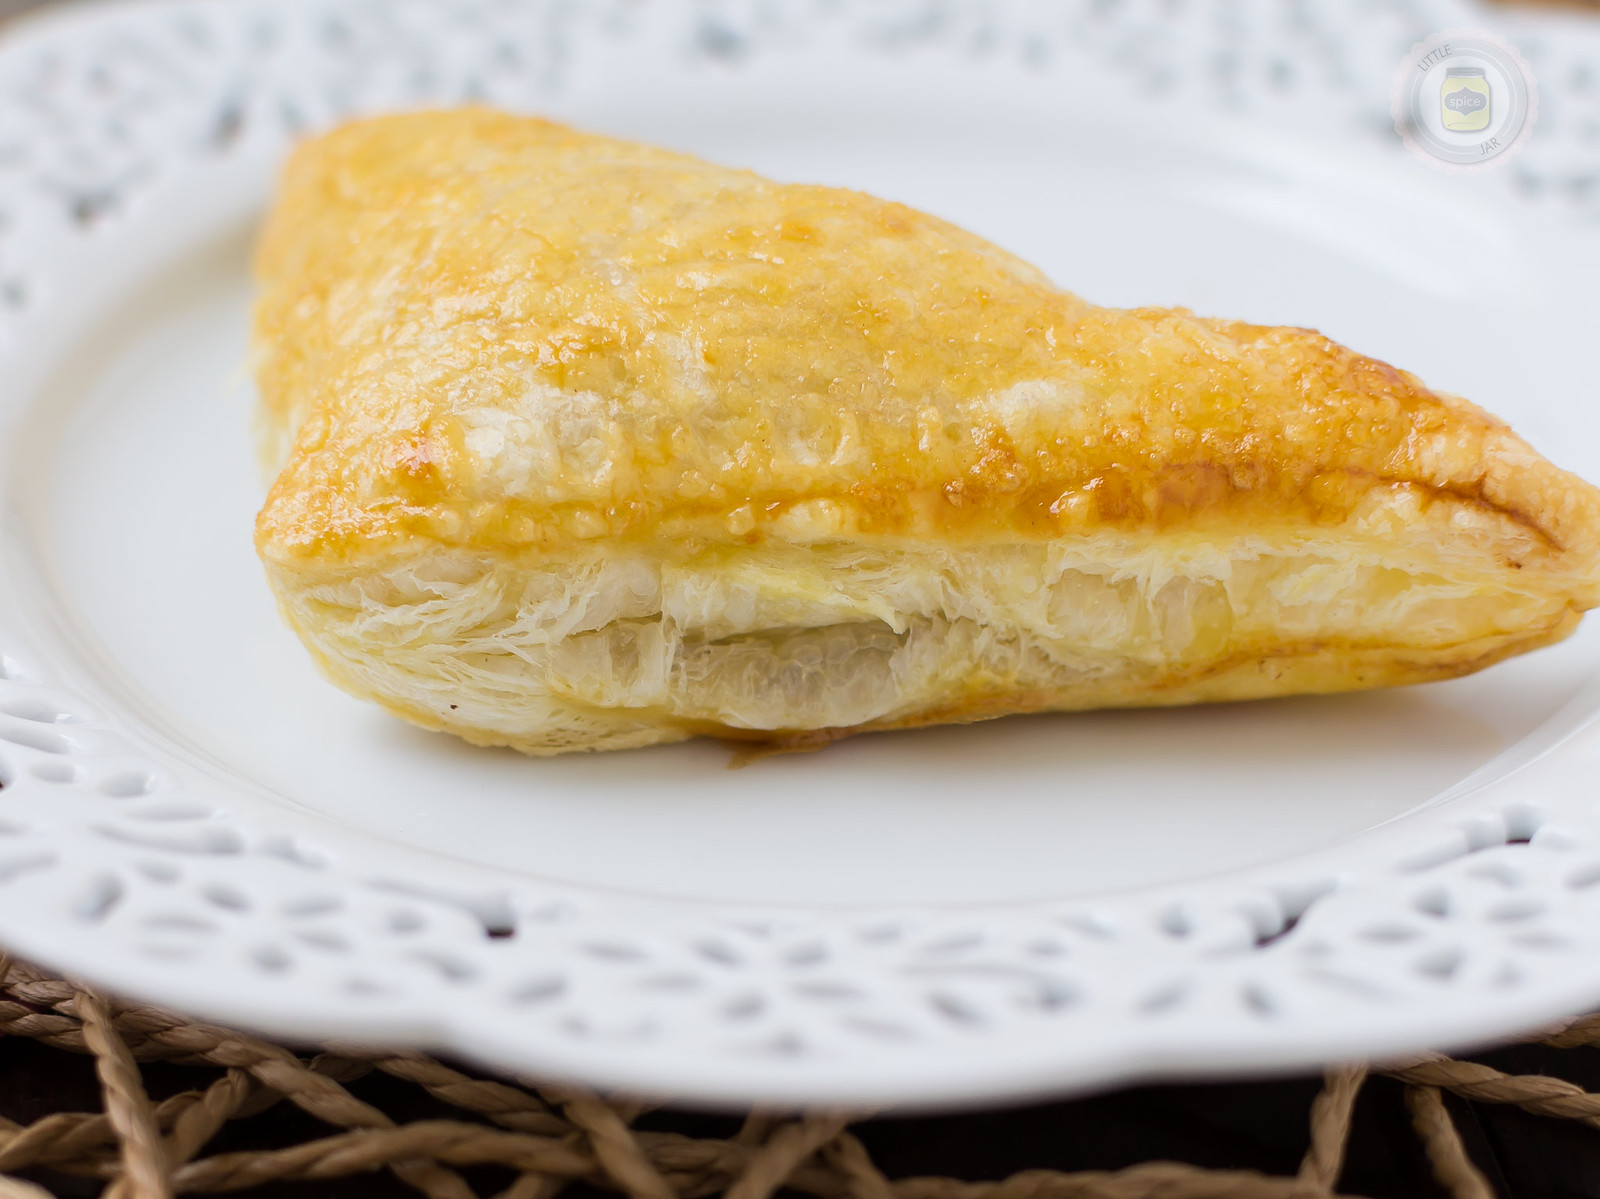 Chicken Puff Pastry Triangle close up shows puff pastry texture